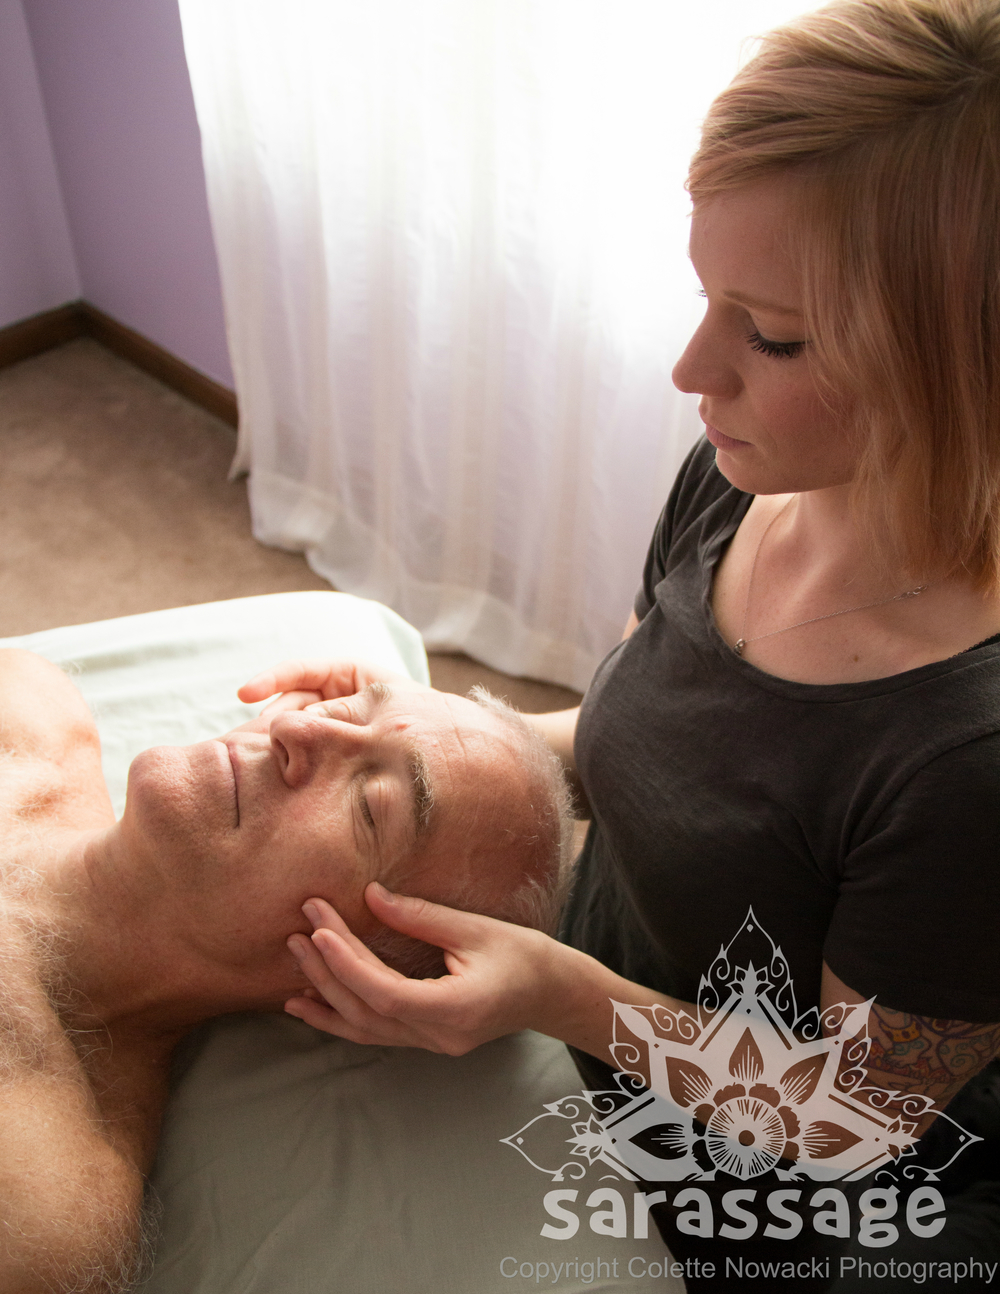 Craniosacral Work   A gentle form of bodywork that uses subtle touch and connects with the nervous system to help release deeply-held tension and restore function throughout the body. Especially helpful for those suffering from headaches, migraines, insomnia, anxiety and depression.